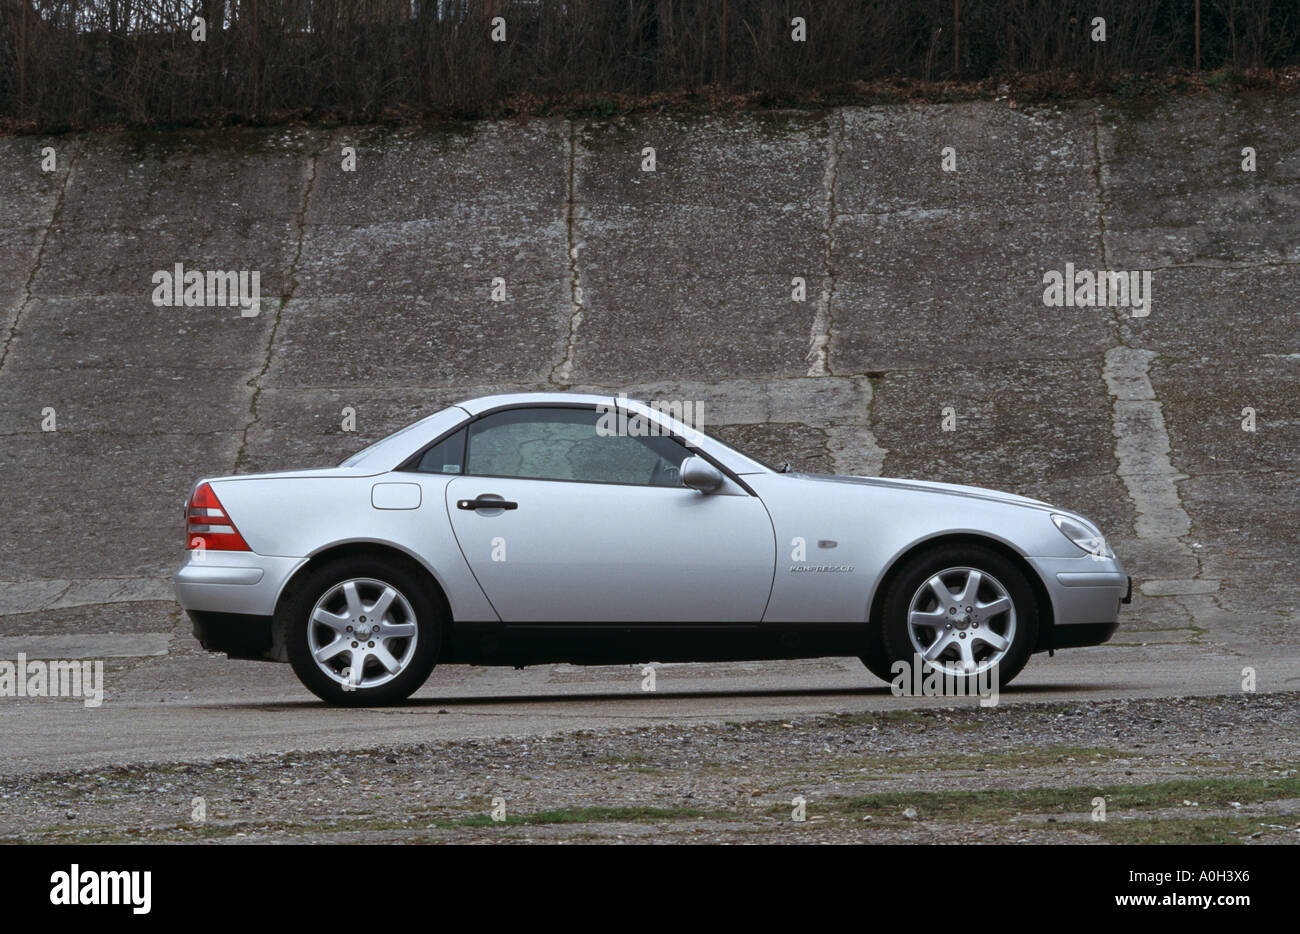 mercedes benz slk 1996 to 2005 r170 stock photo royalty free image 5711845 alamy. Black Bedroom Furniture Sets. Home Design Ideas